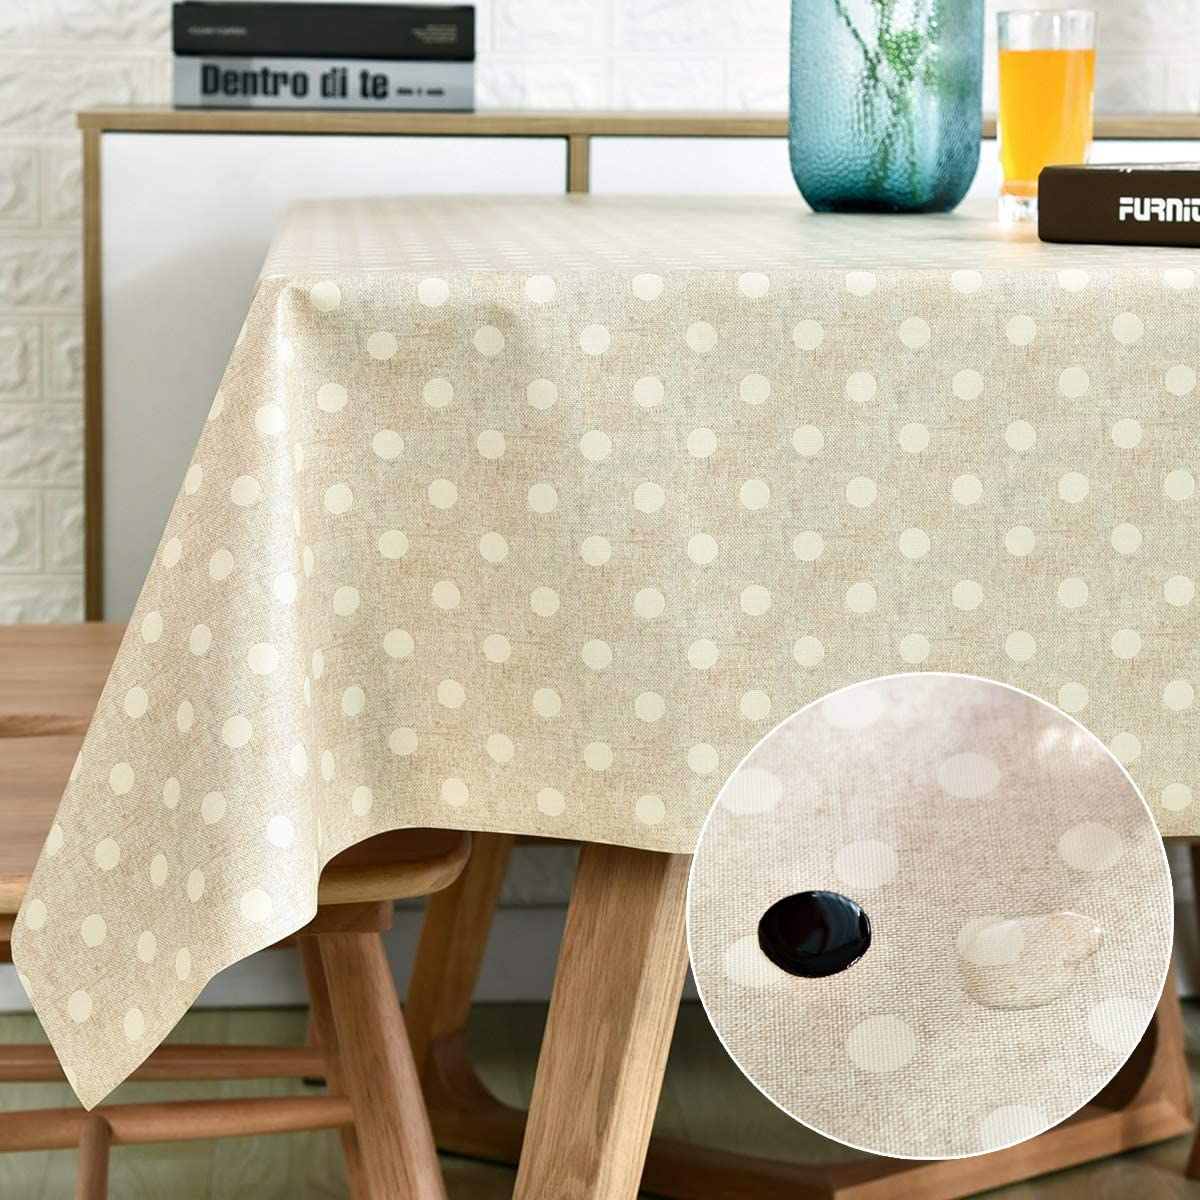 LOHASCASA Vinyl Oilcloth Tablecloth Rectangle Wipeable Oil-Proof Waterproof PVC Heavy Duty Long Tablecloth Beige and White Polka Dot 54 x 108 Inch